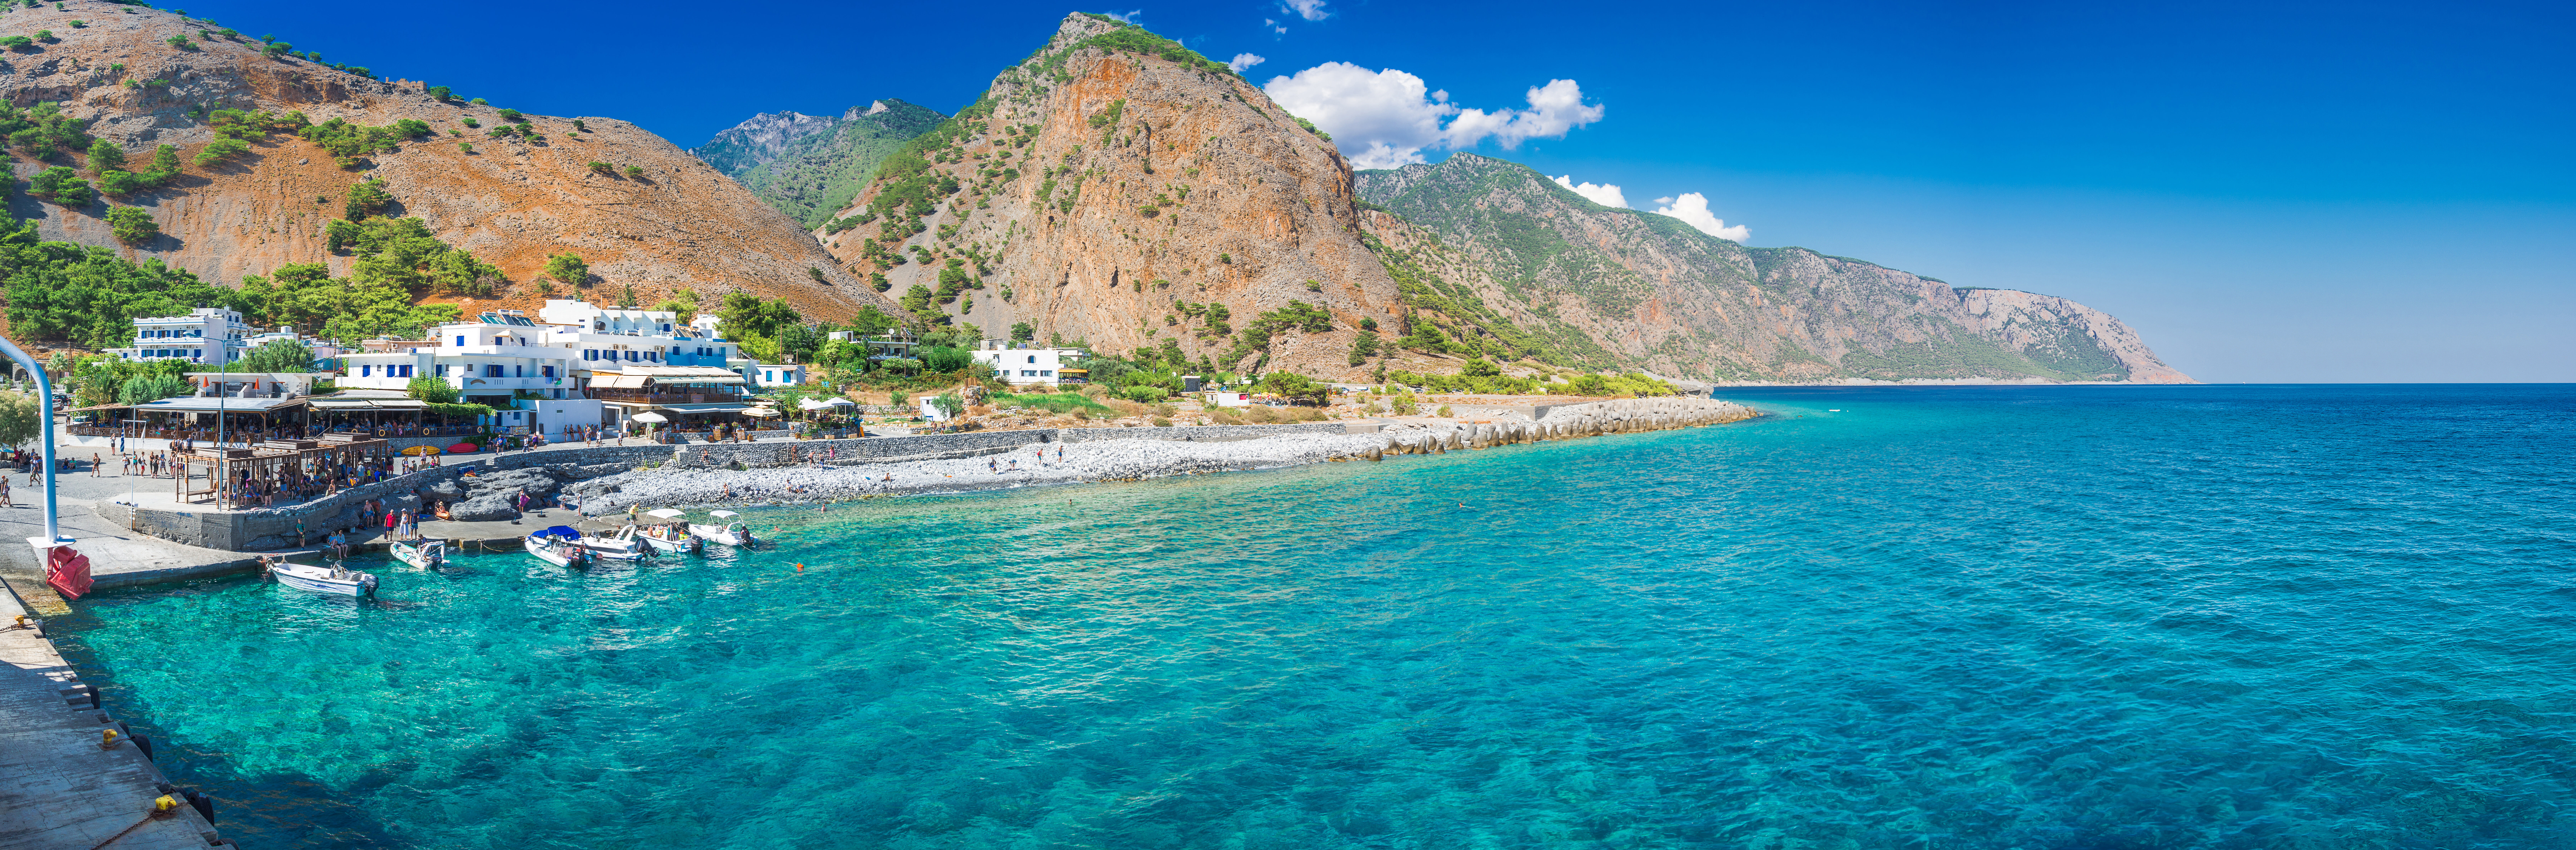 Crete: Agia Roumeli, the Greek village at the end of the largest gorge